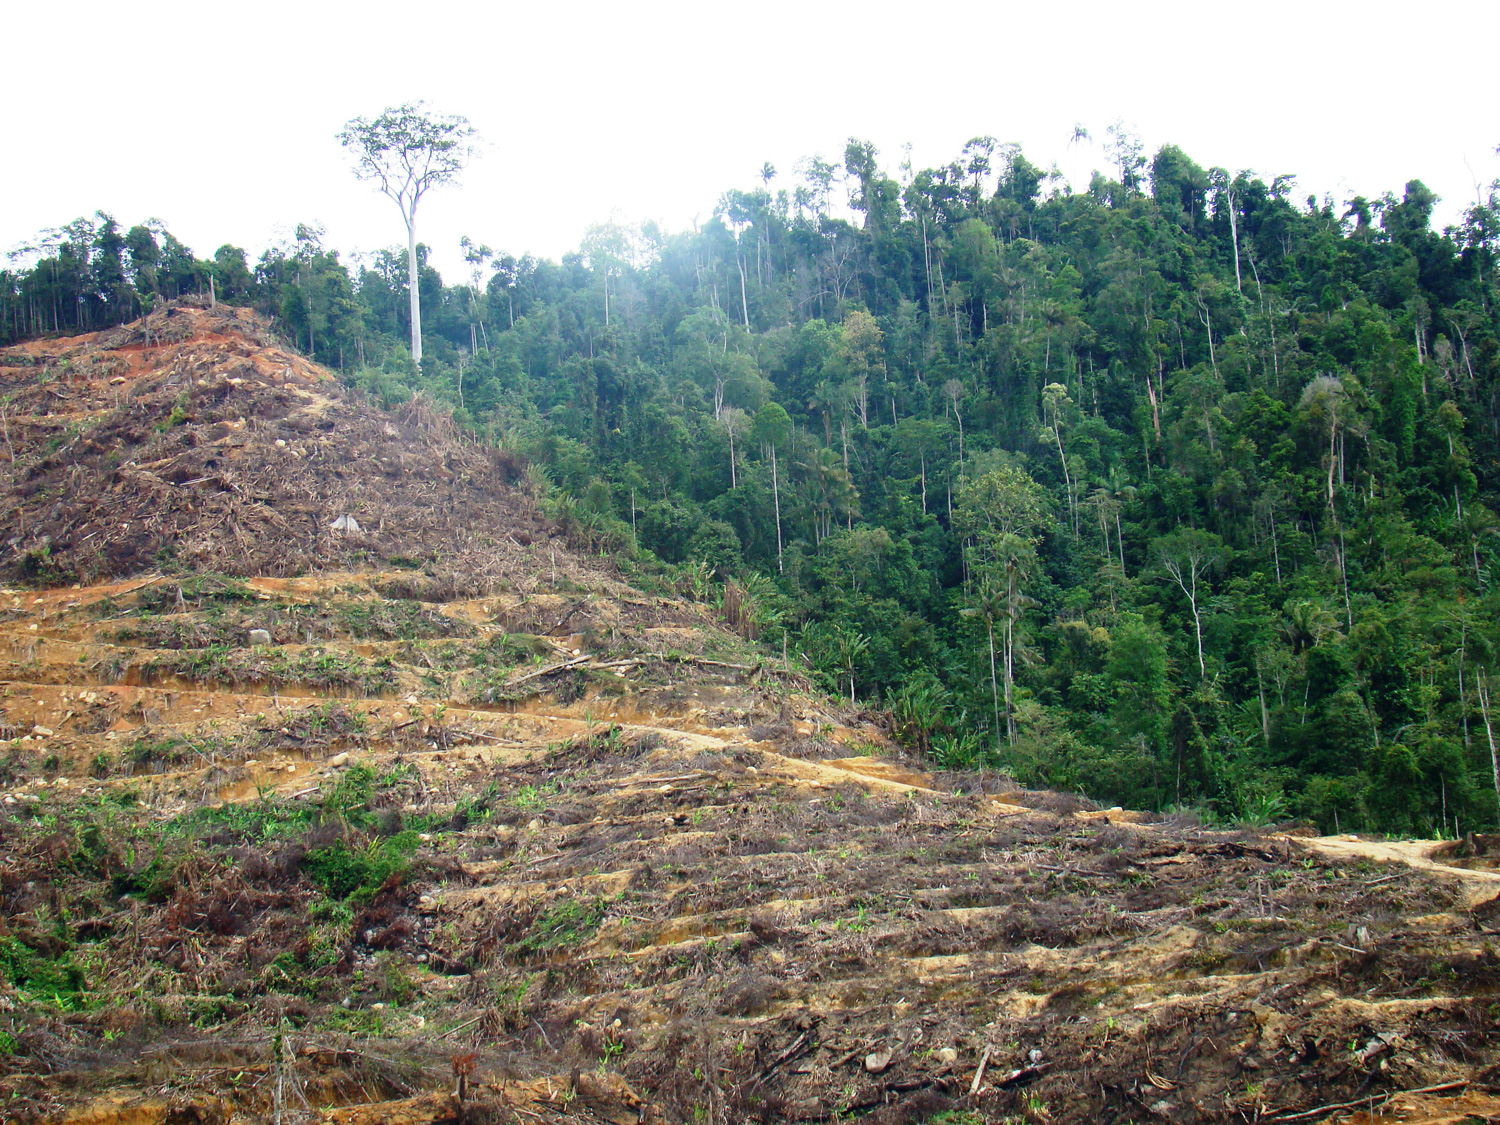 Photo shows hillside denuded of trees on left, intact tropical forest on right.